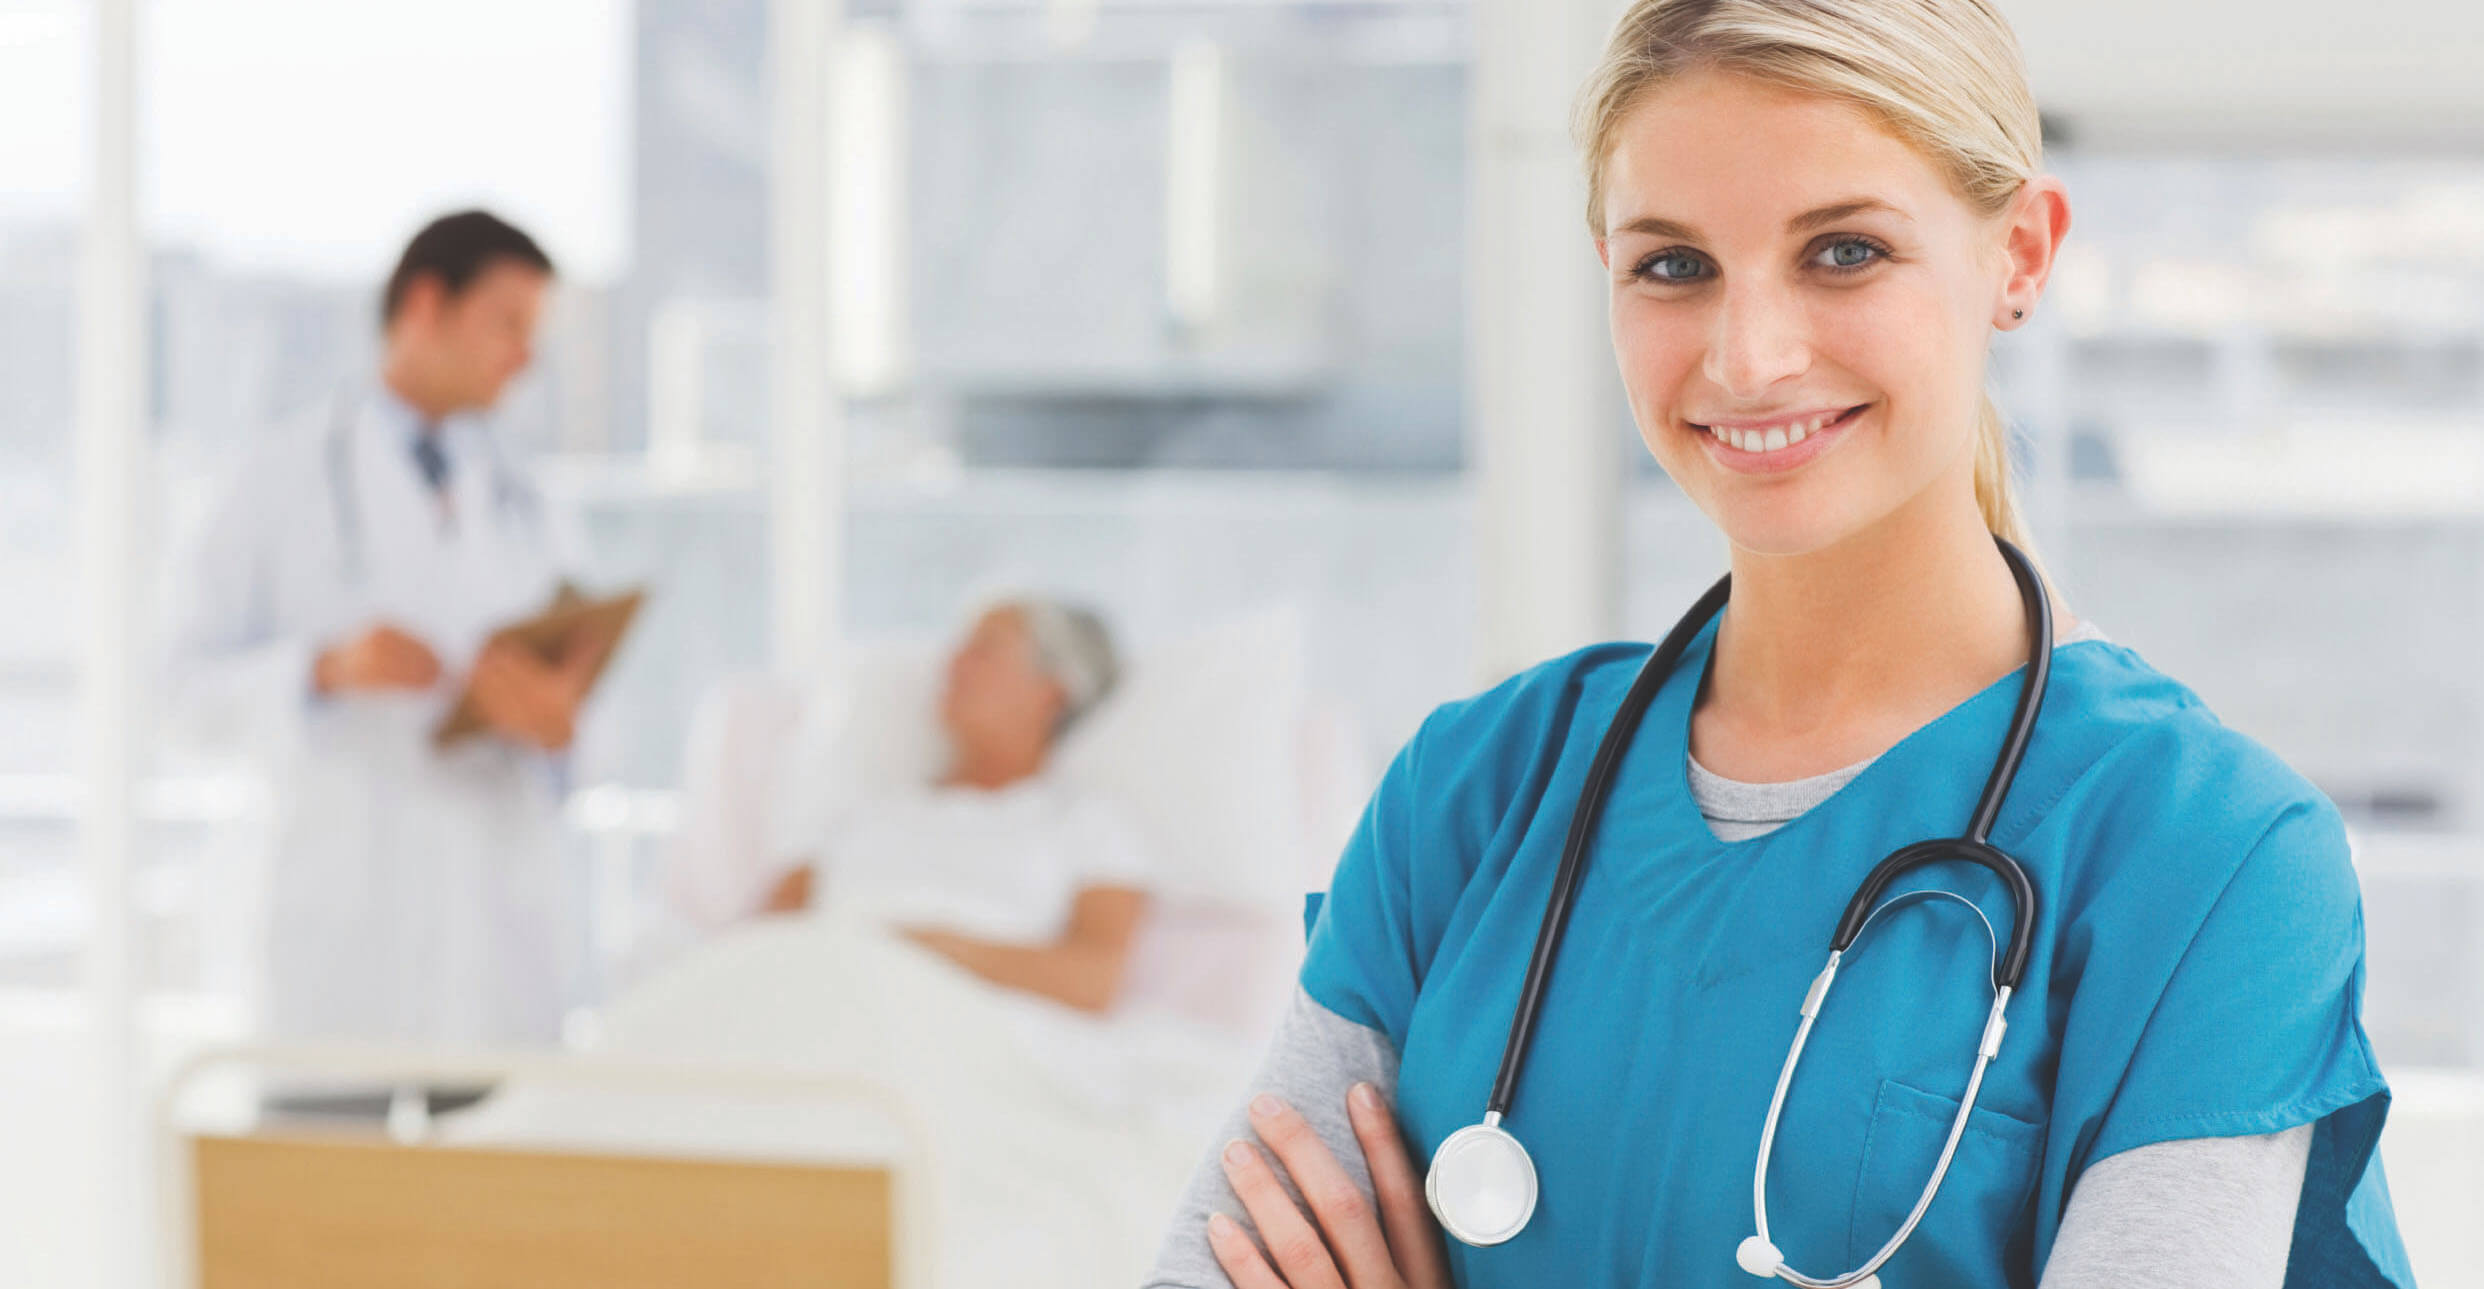 Online Nurse Practitioner Programs to Become an NP